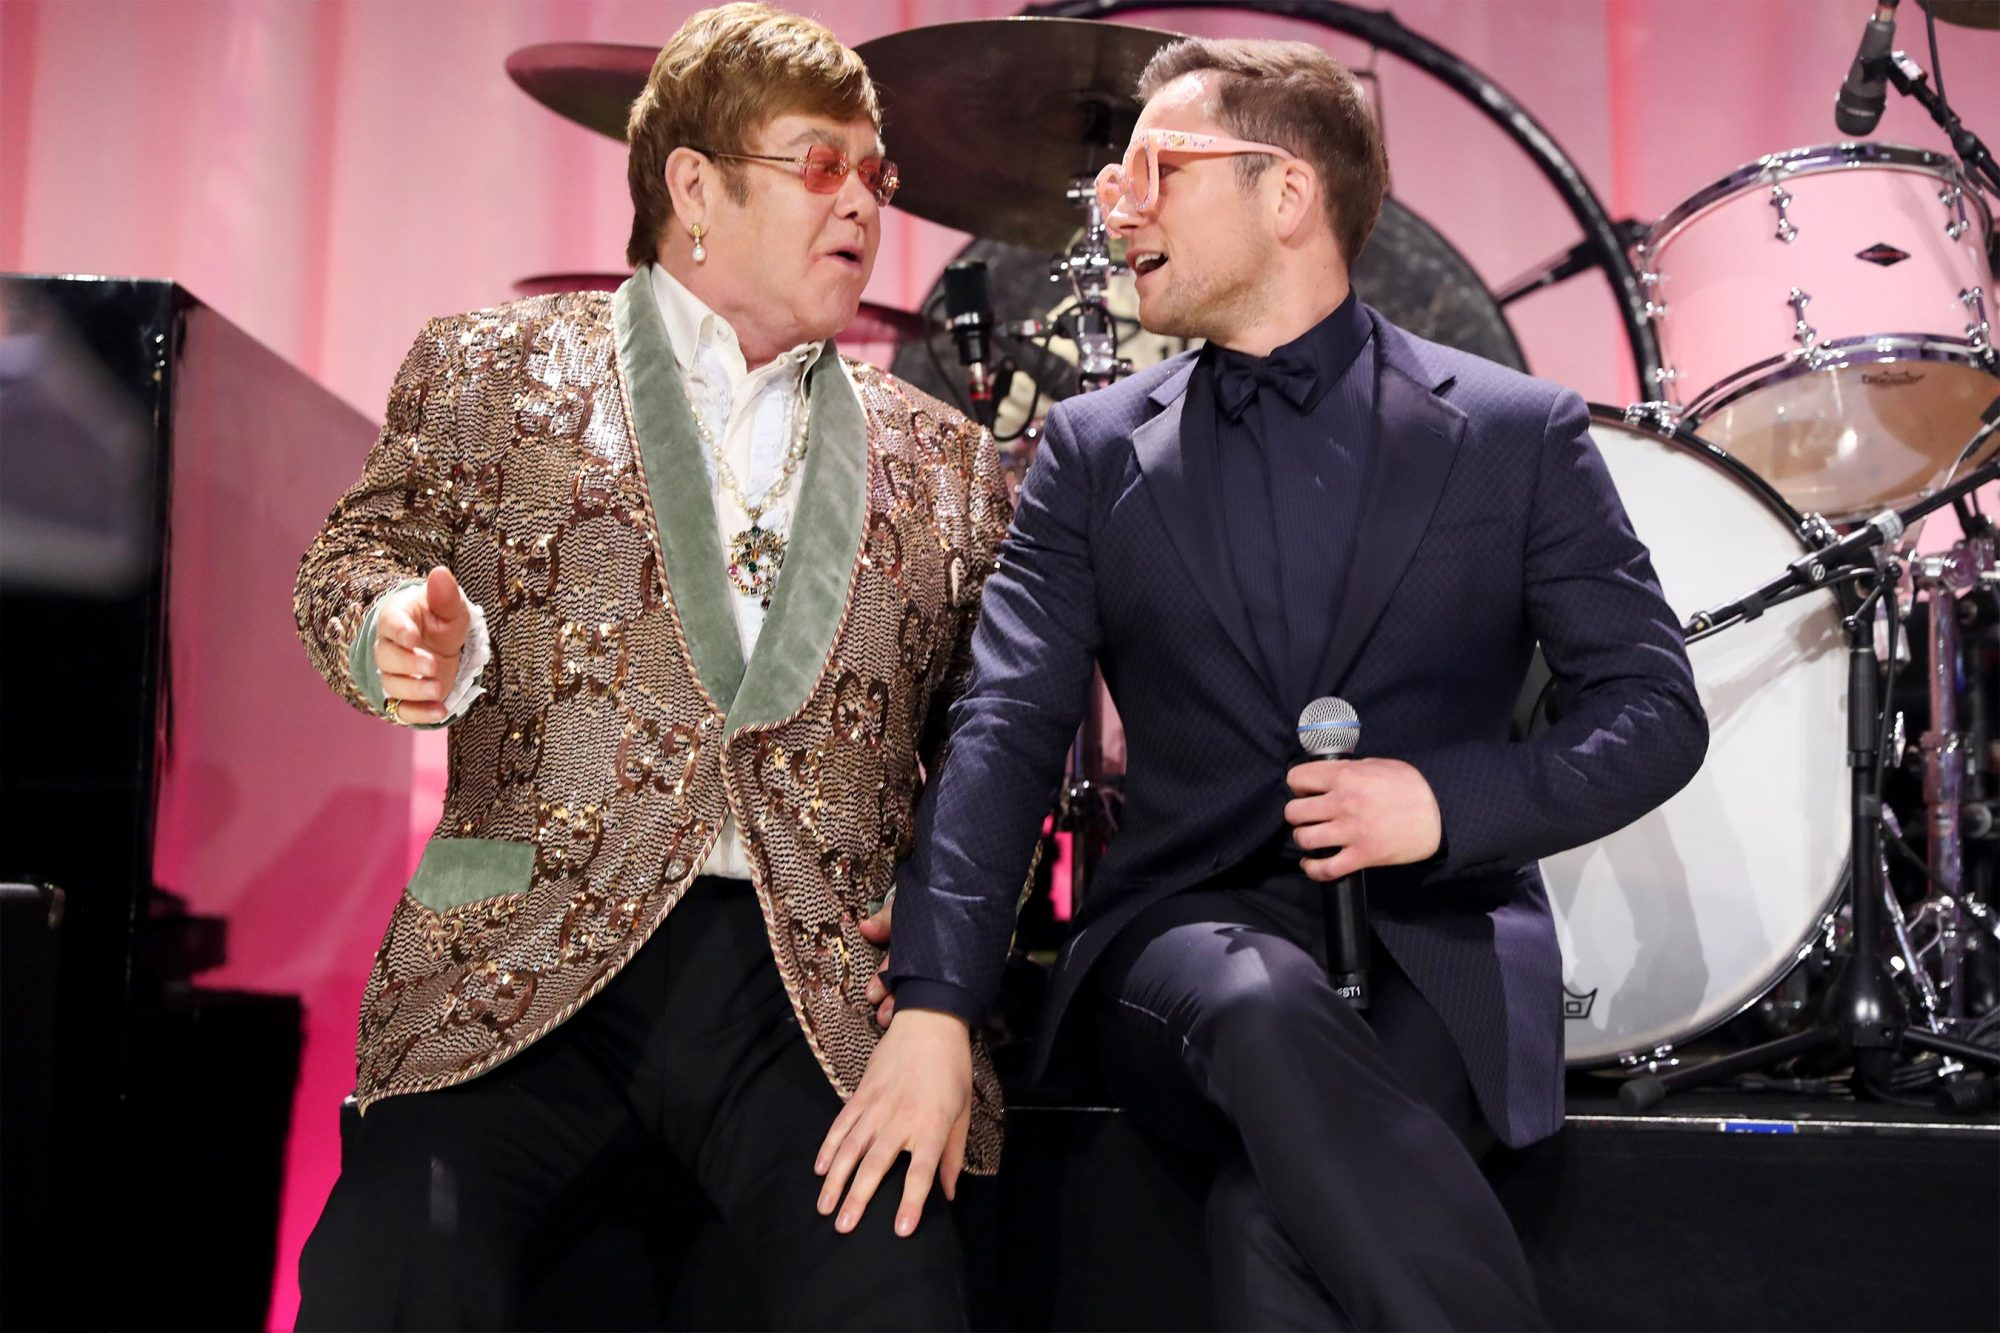 WEST HOLLYWOOD, CA - FEBRUARY 24: Sir Elton John and Taron Egerton perform onstage during the 27th annual Elton John AIDS Foundation Academy Awards Viewing Party sponsored by IMDb and Neuro Drinks celebrating EJAF and the 91st Academy Awards on February 24, 2019 in West Hollywood,California. (Photo by Rich Fury/Getty Images for EJAF)